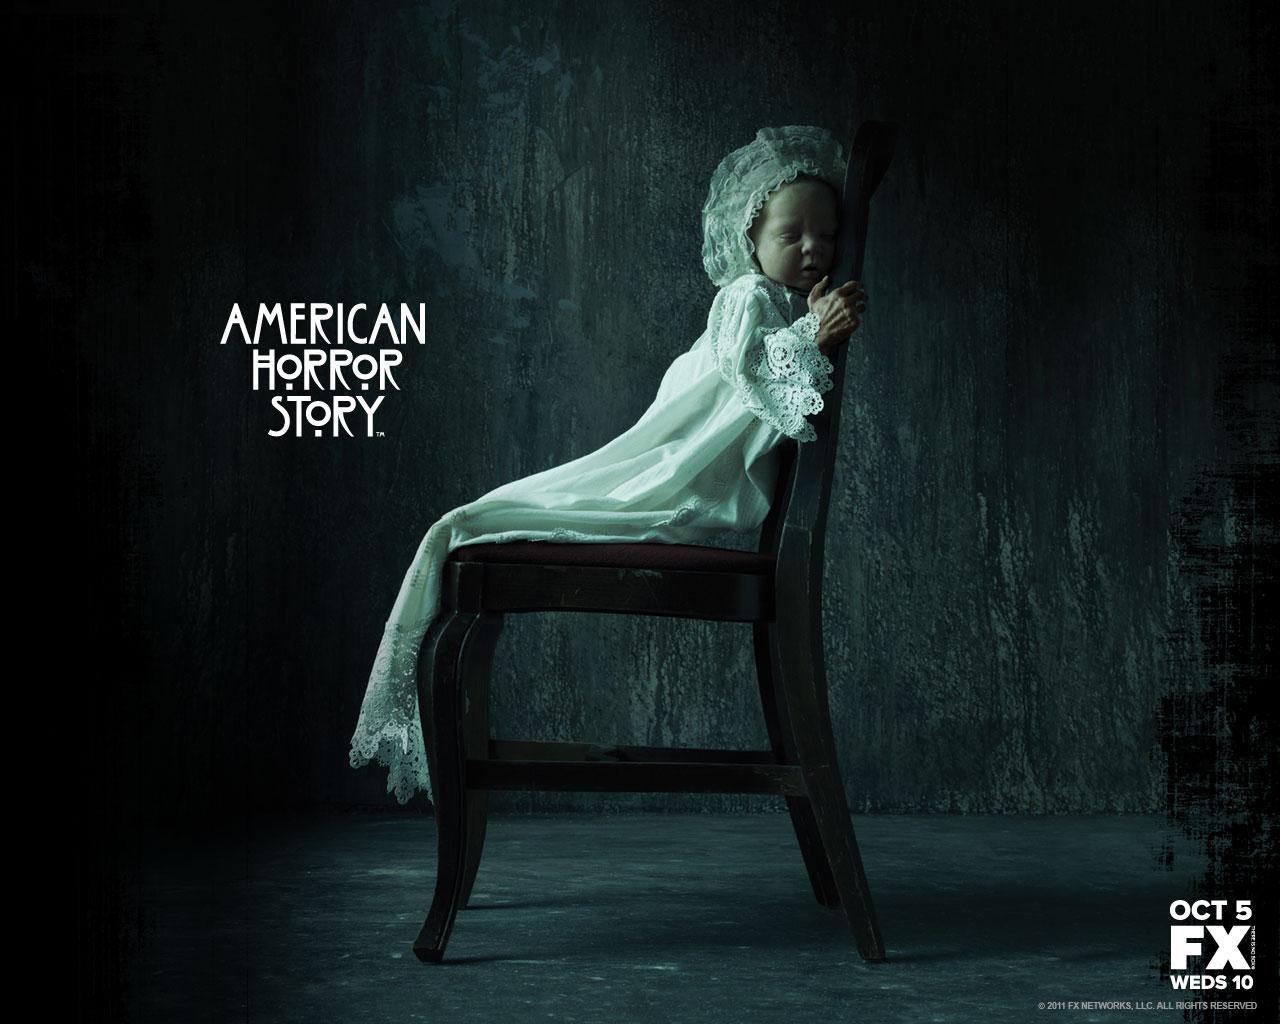 image gallery for american horror story murder house tv